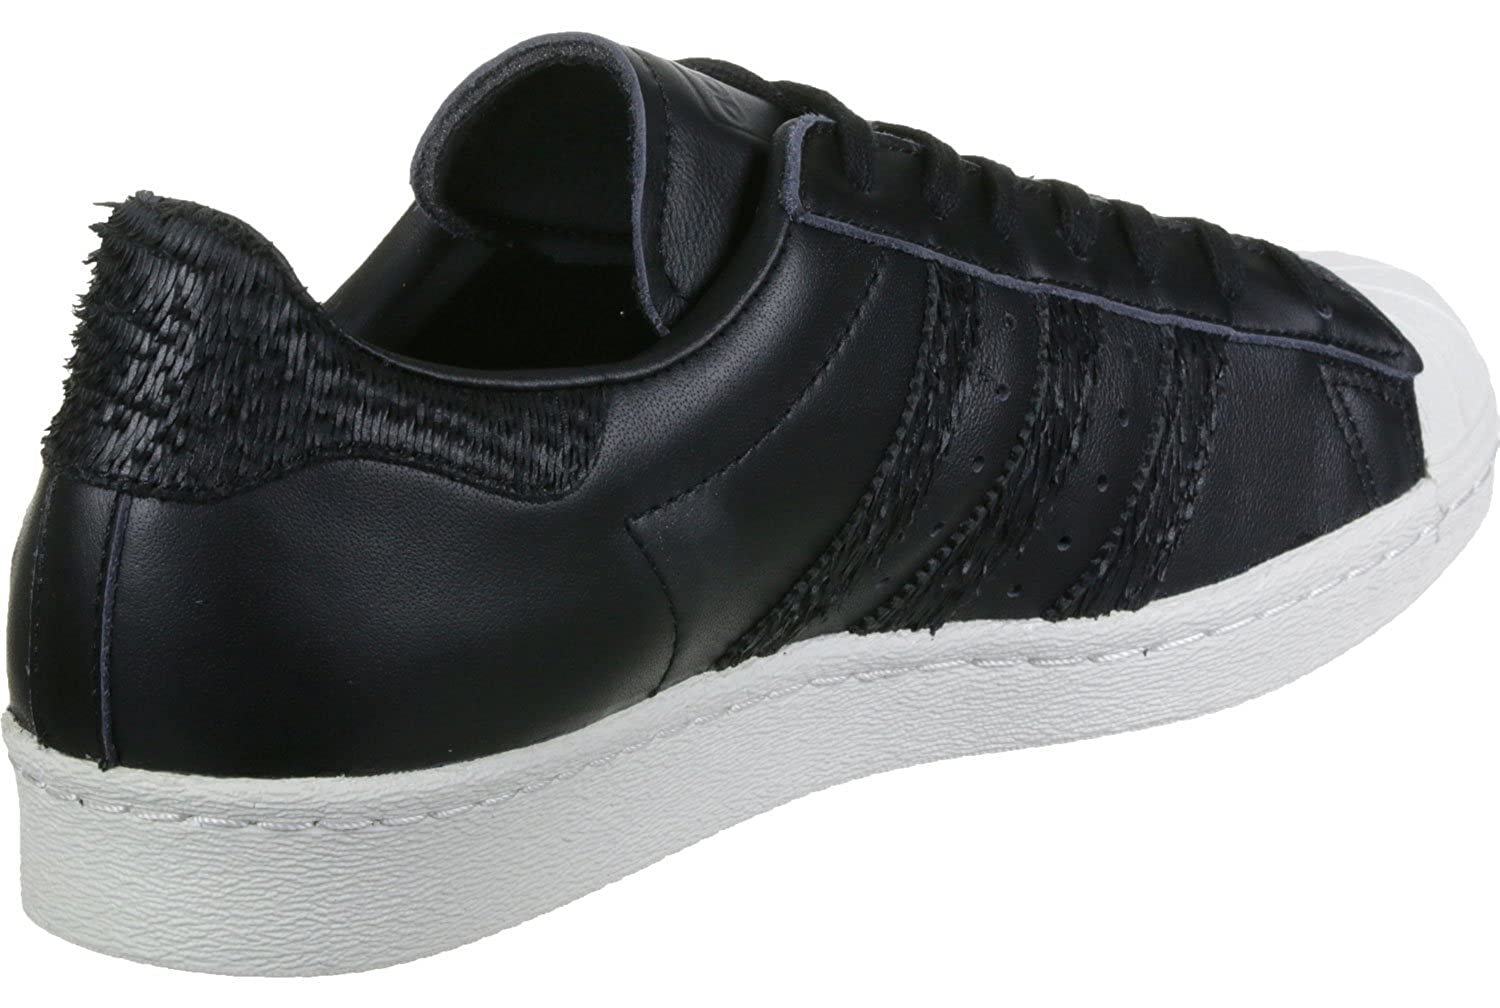 adidas Superstar 80s CNY Calzado Black/White